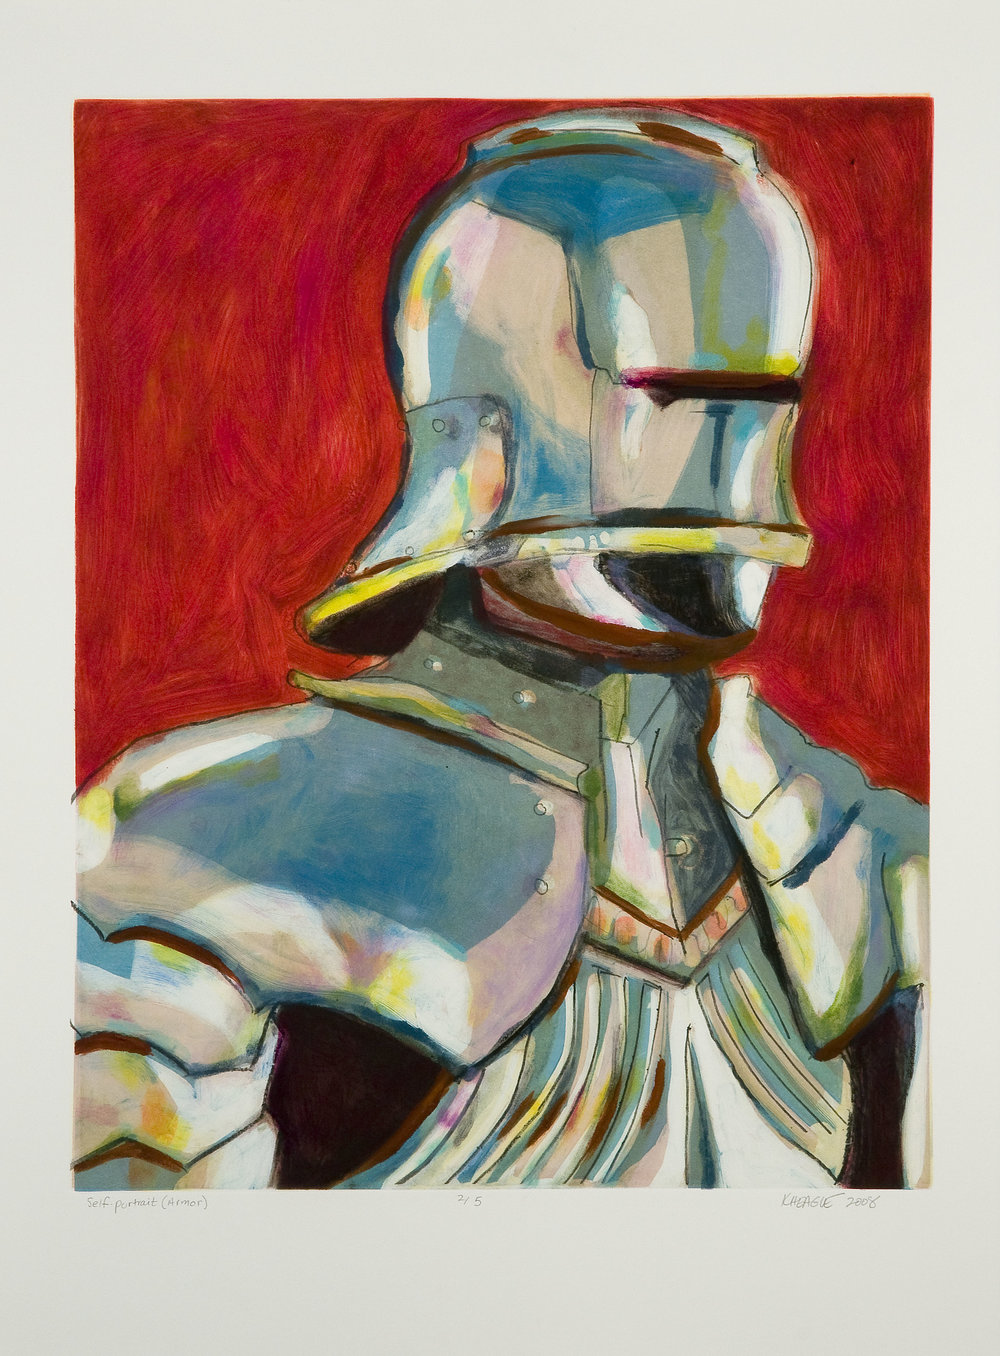 Karen Heagle  Self Portrait (Armor) (II) , 2008 Monotype Image size: 18.75 x 23.75 inches Paper size: 22 x 30 inches Series of 5